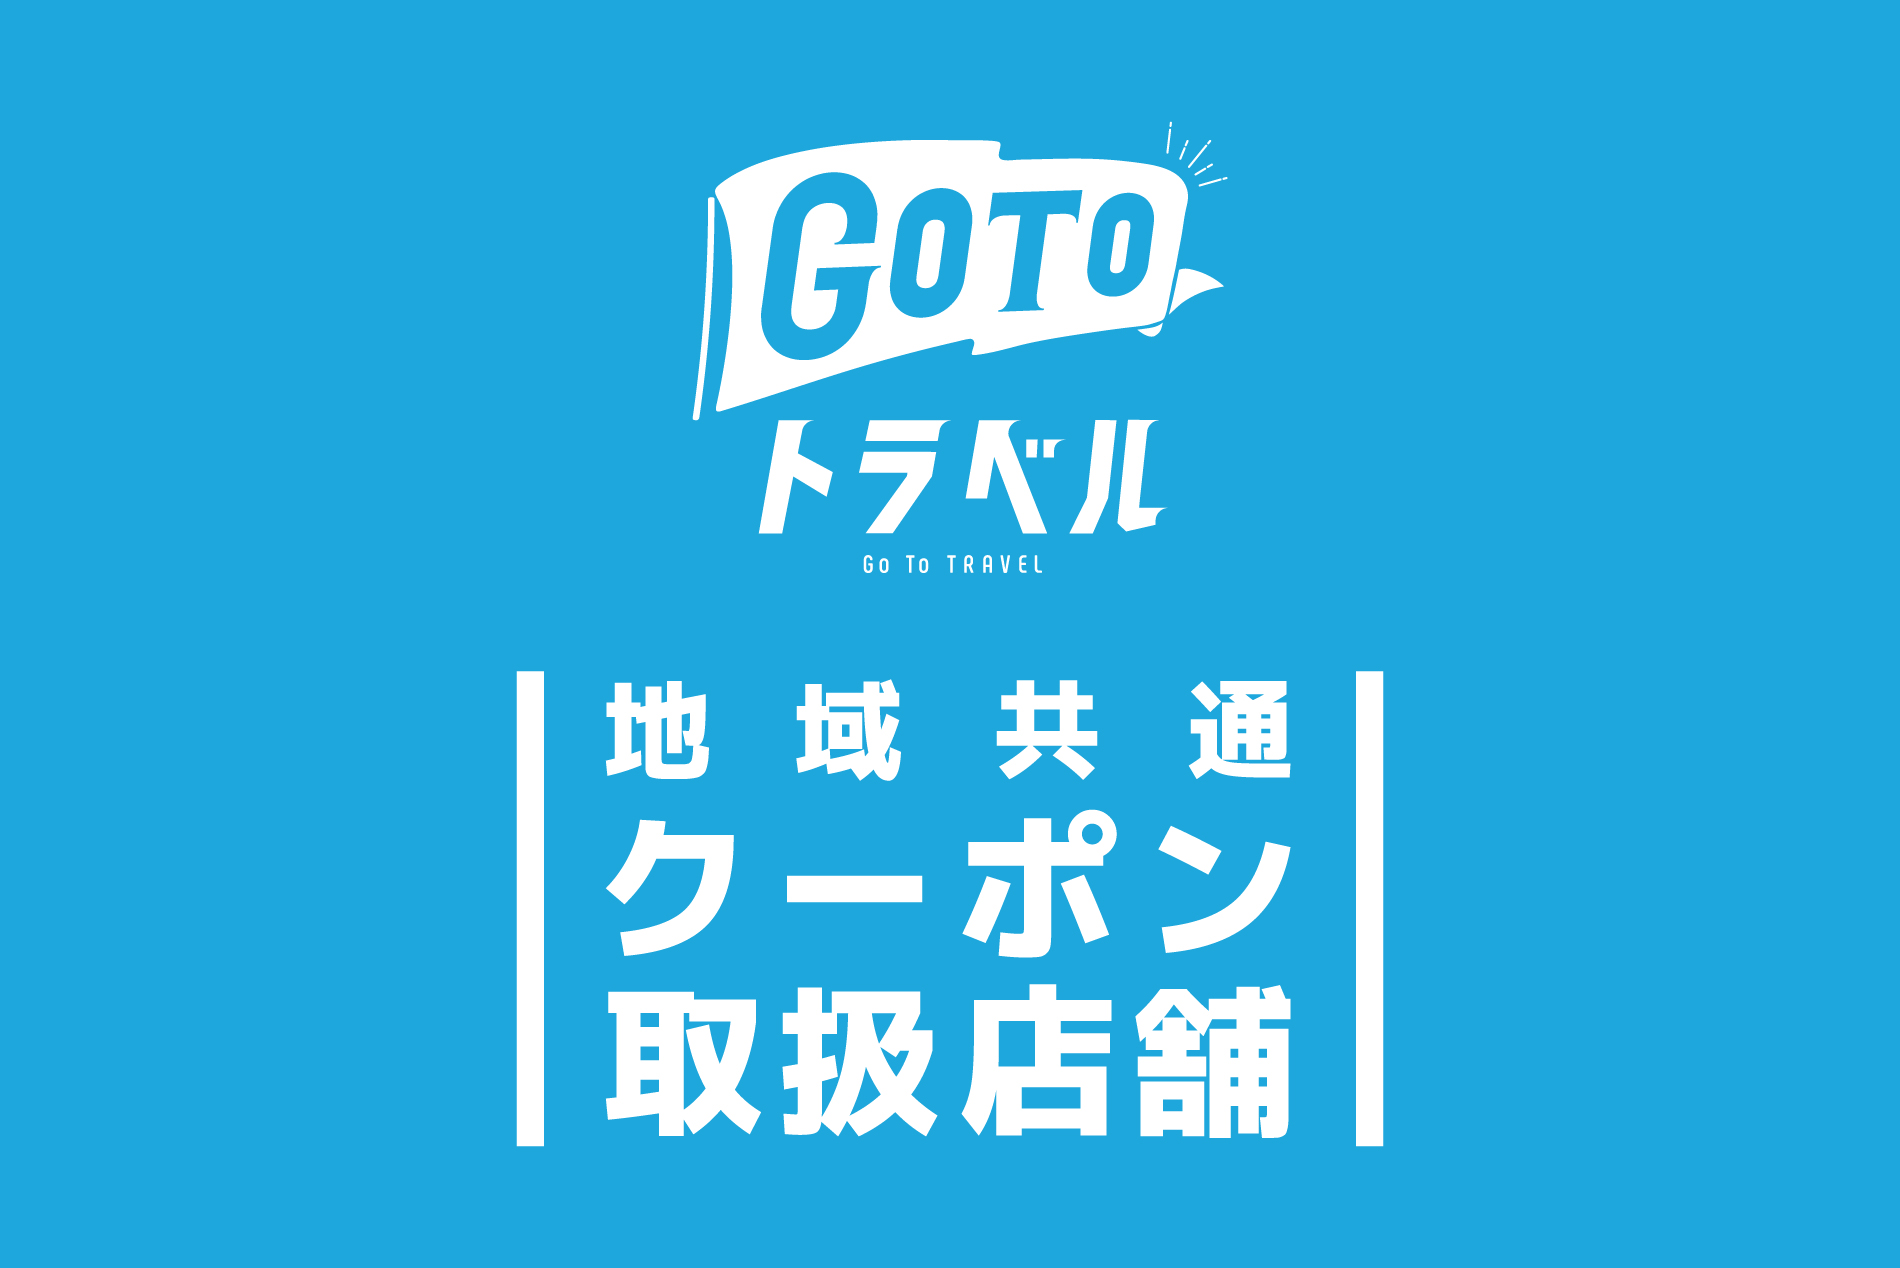 GOTOトラベル地域共通クーポン取扱店舗 | 富士山御殿場・はこね観光案内所